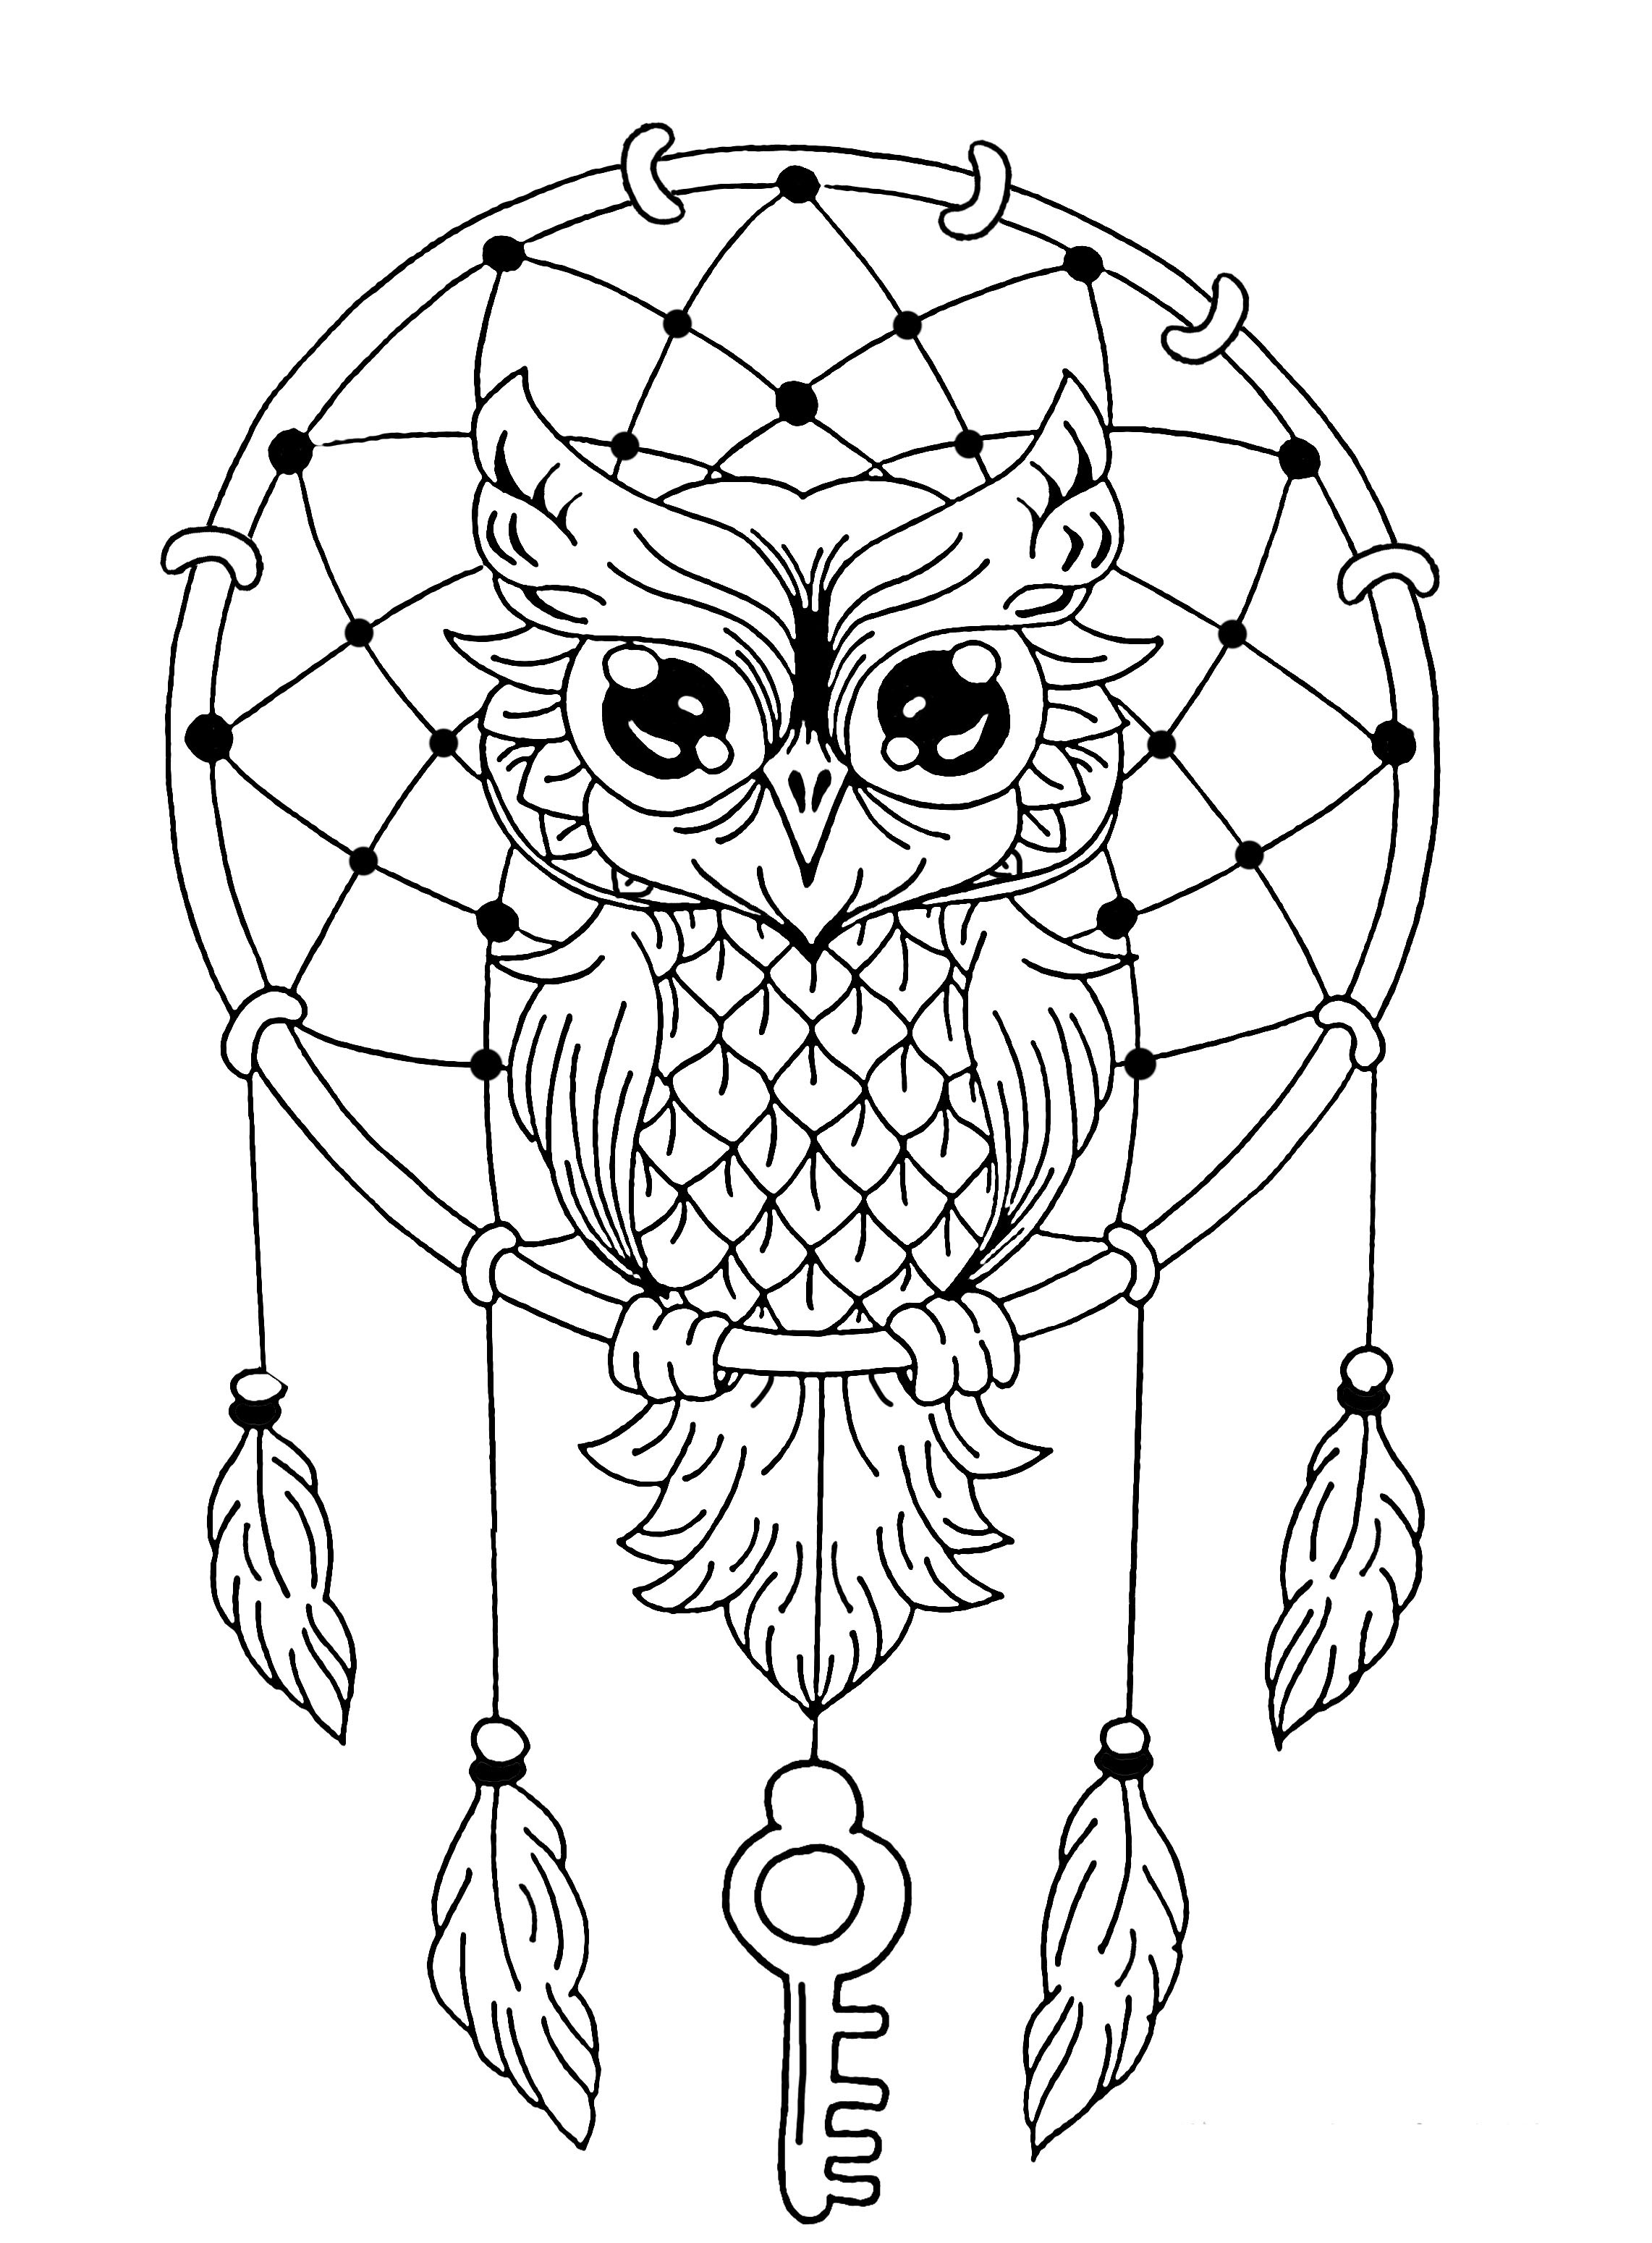 2283x3099 Coloring Pages For Adults Dream Catchers Dream Catcher Coloring